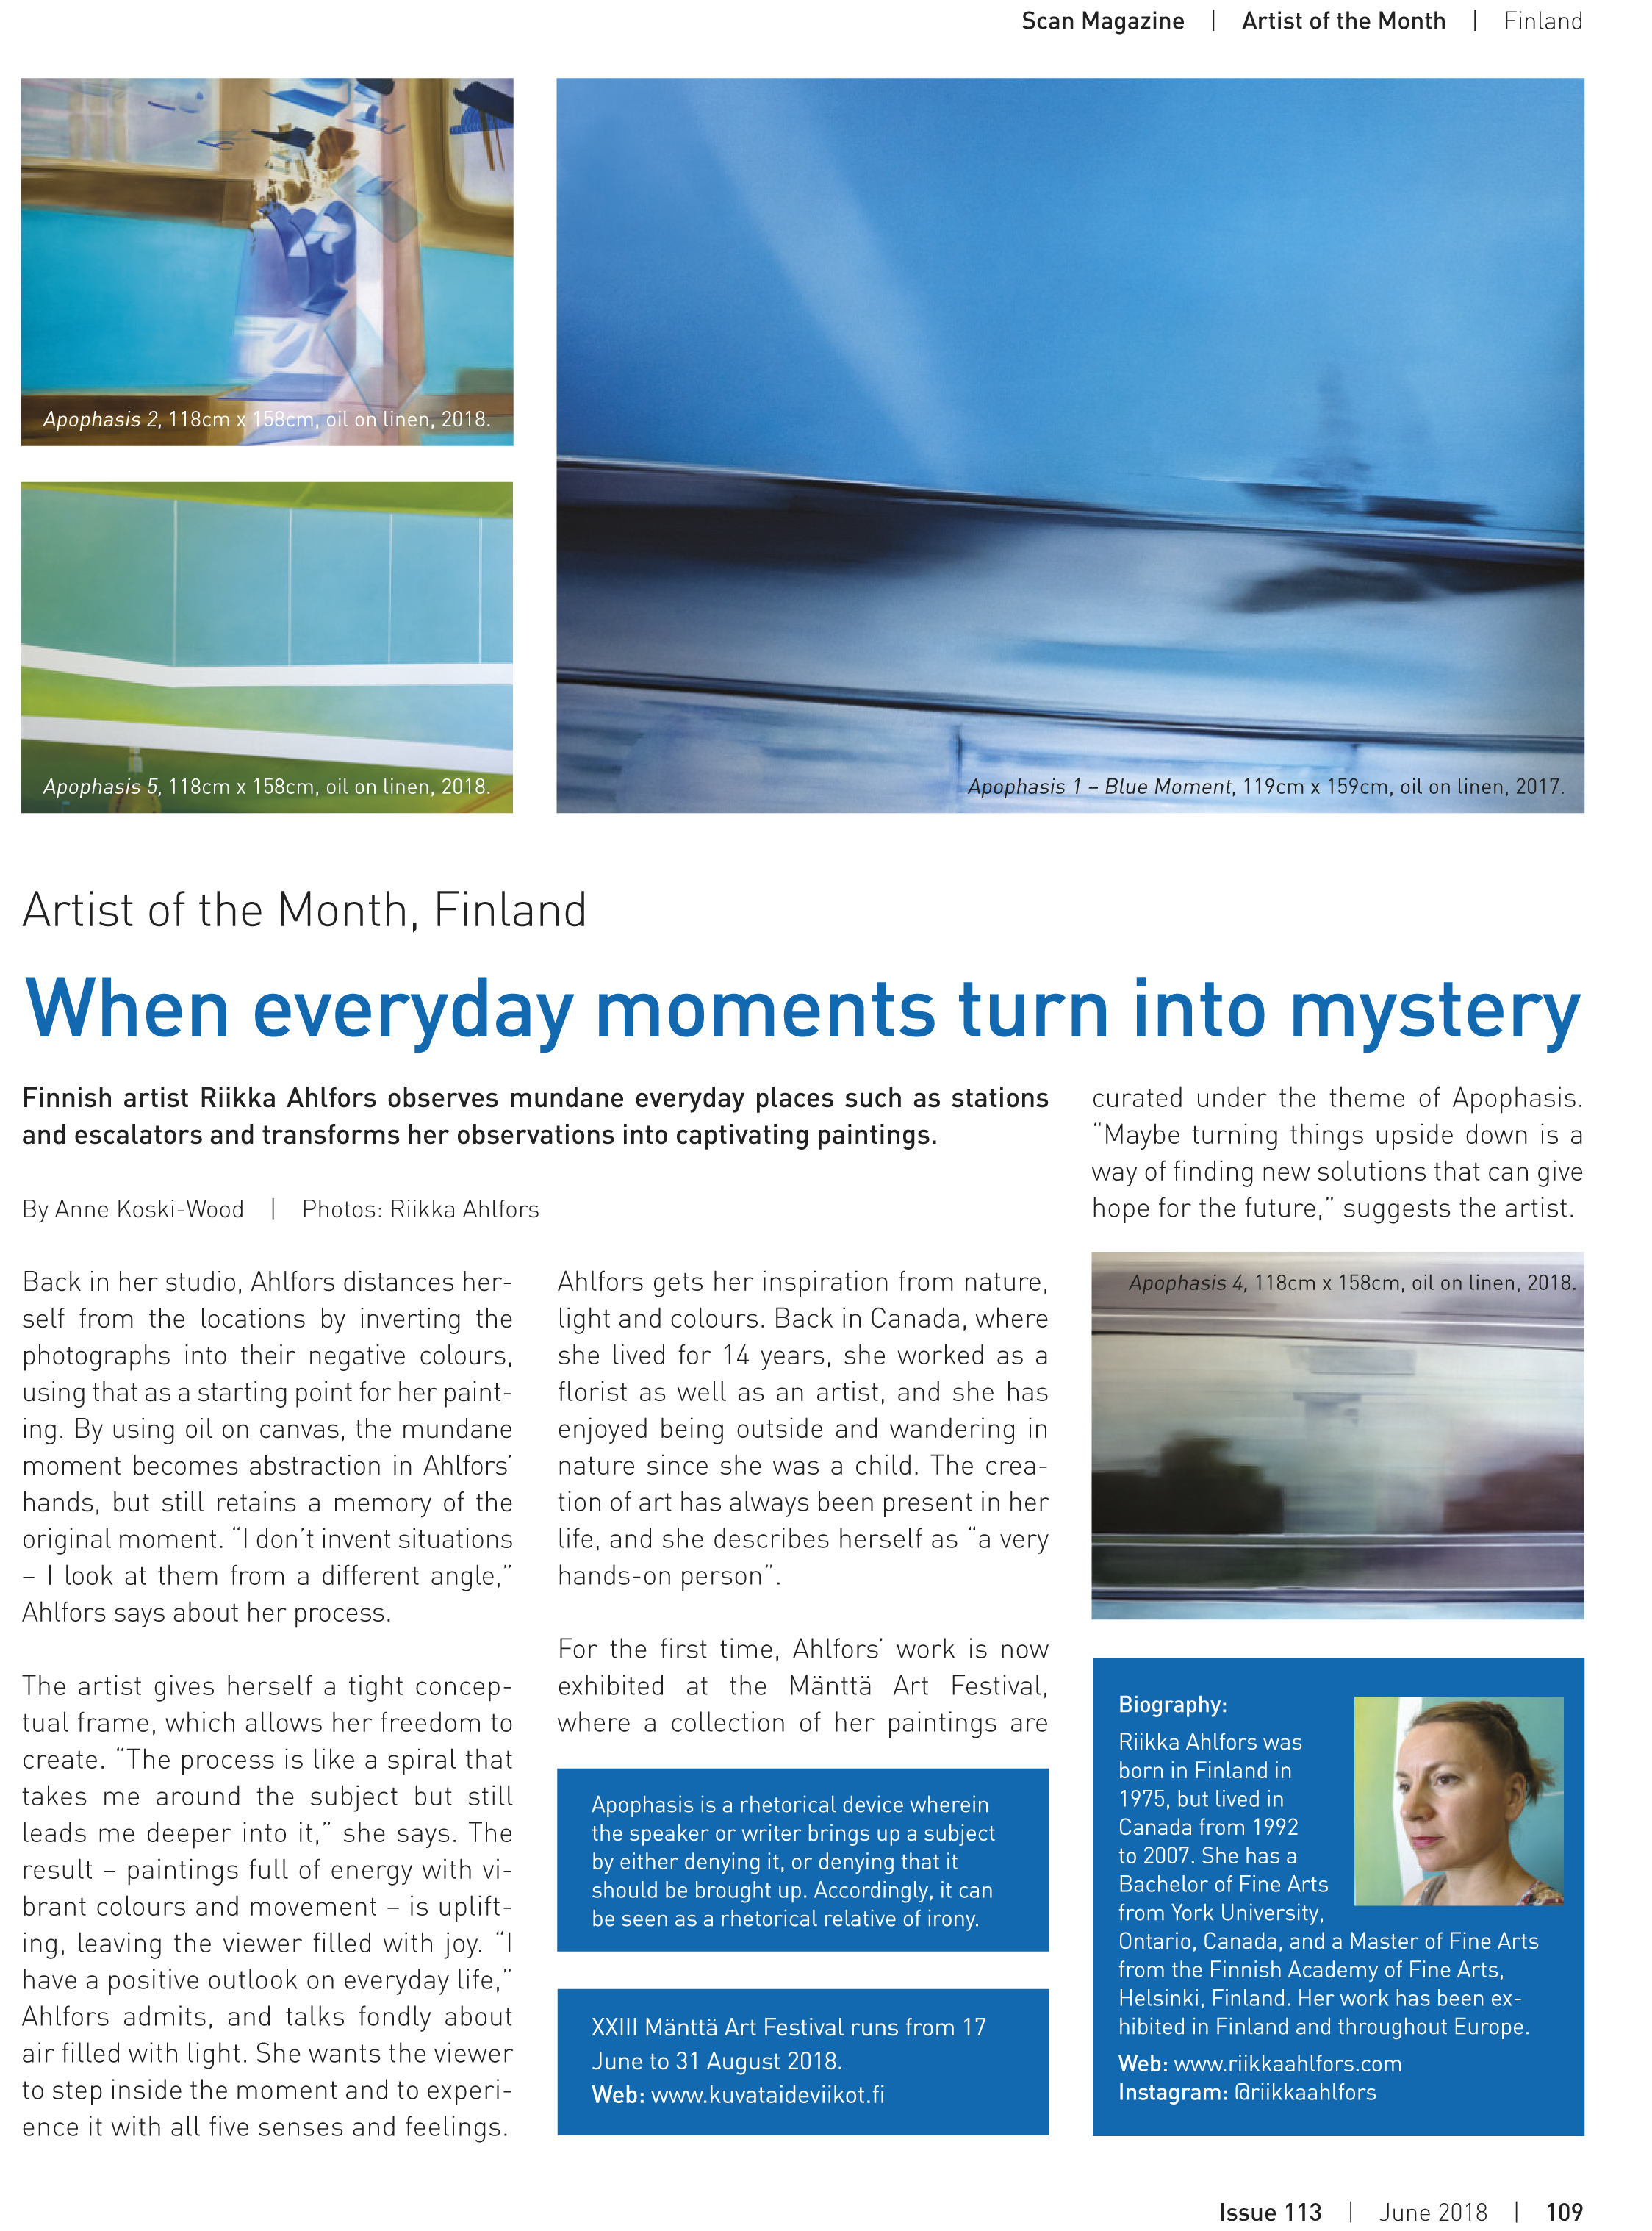 ScanMagazine 113 June 2018 - Artist of the Month, Finland